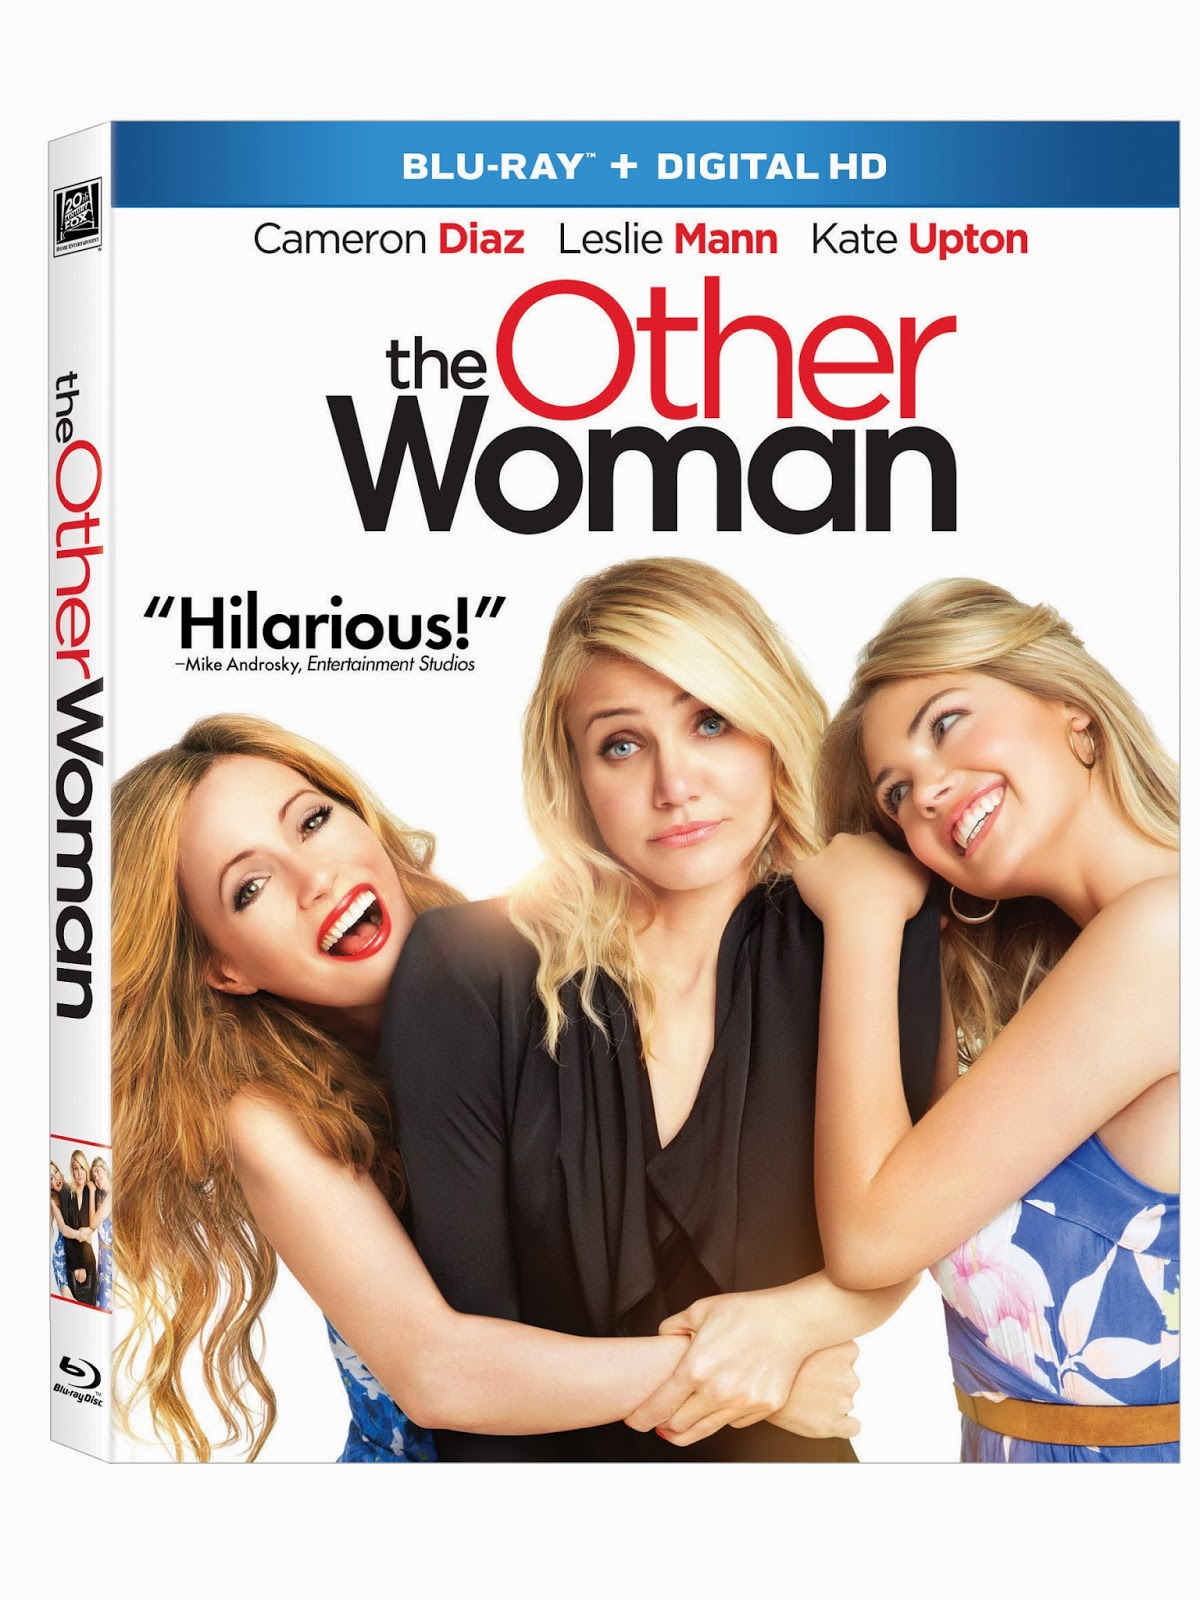 Blu-ray Review - The Other Woman